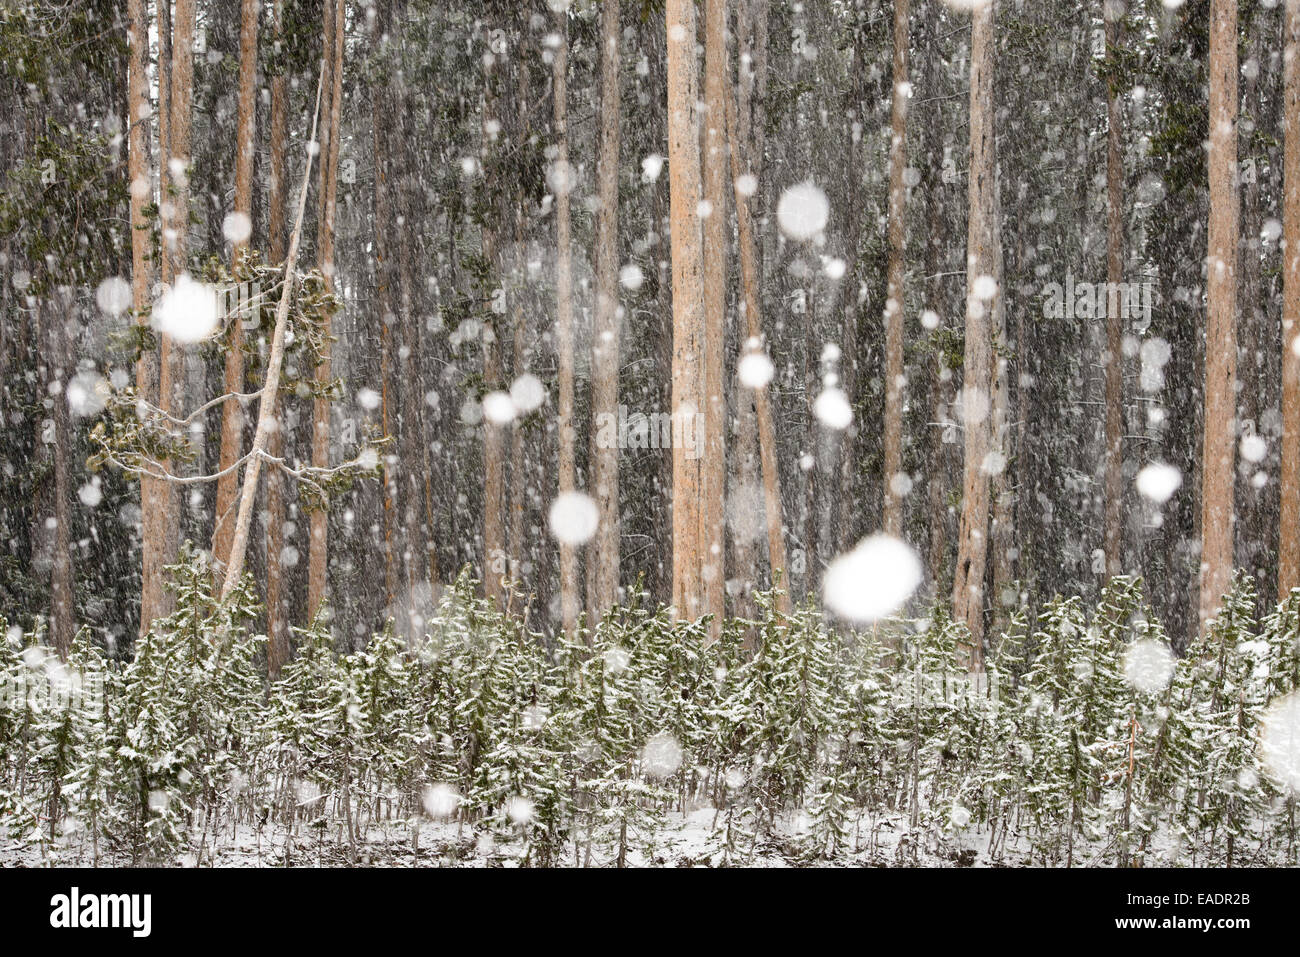 Heavy snow at a stand of conifer forest in Yellowstone National Park after June snowfall. - Stock Image